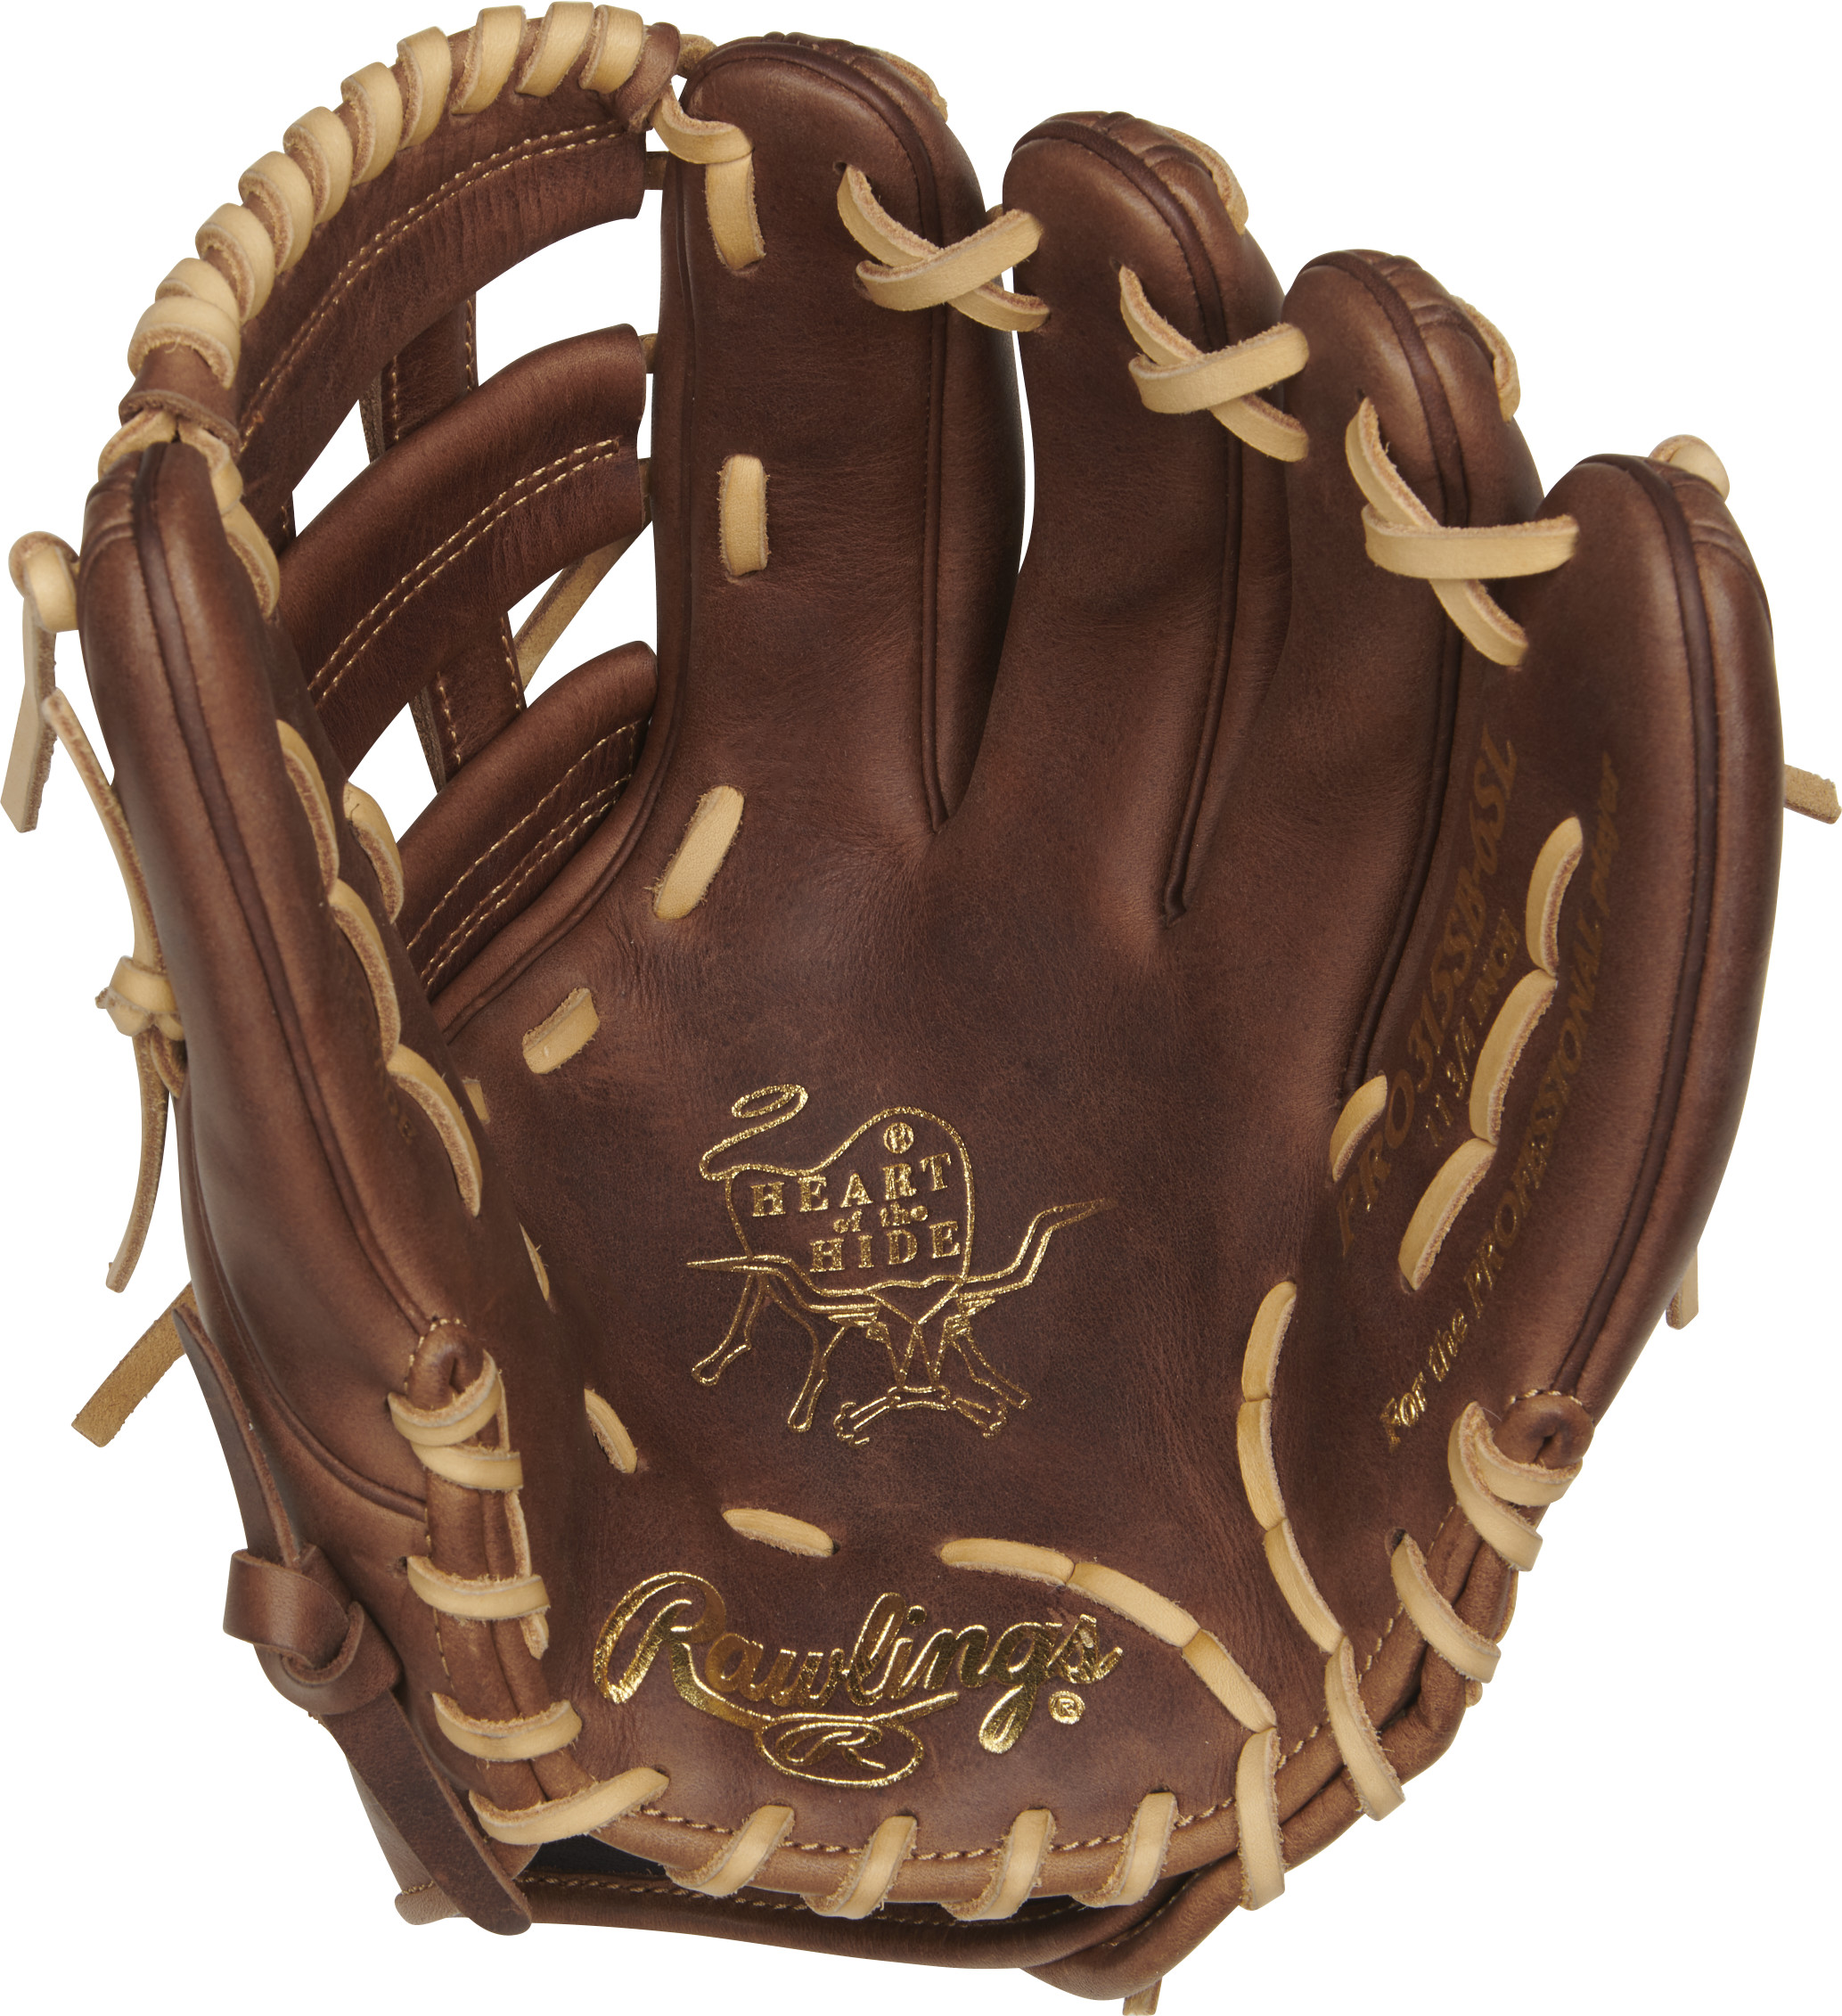 http://www.bestbatdeals.com/images/gloves/rawlings/PRO315SB-6SL-1.jpg